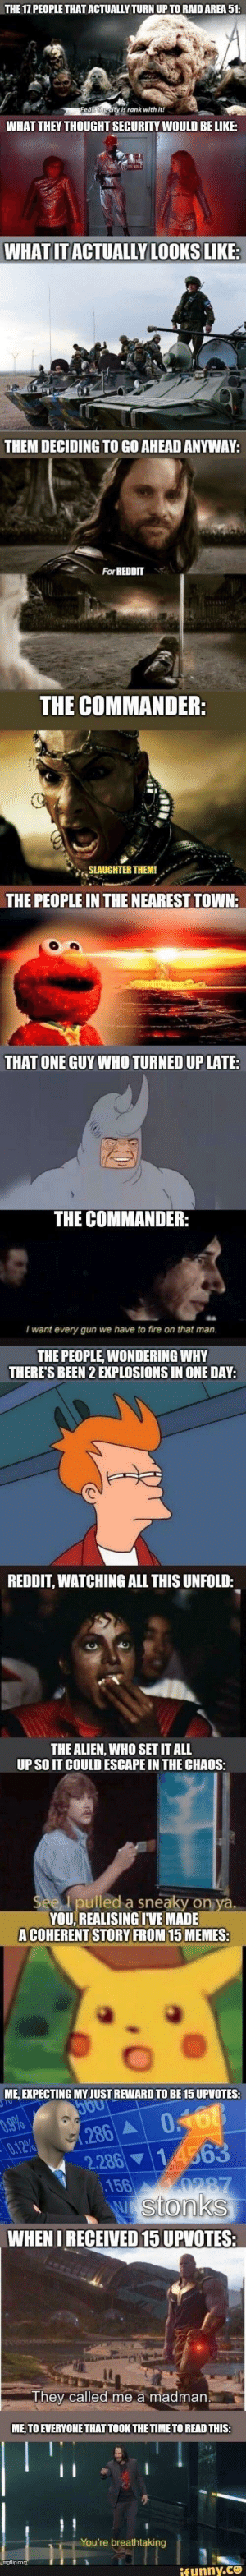 b e u h: THE 17 PEOPLE THAT ACTUALLY TURN UP TO RAID AREA 51:  Fear the city is rank with it!  WHAT THEY THOUGHT SECURITY WOULD BE LIKE:  WHAT IT ACTUALLY LOOKS LIKE:  THEM DECIDING TO GO AHEAD ANYWAY:  For REDDIT  THE COMMANDER:  SLAUGHTER THEM!  THE PEOPLE IN THE NEAREST TOWN:  THAT ONE GUY WHO TURNED UP LATE:  THE COMMANDER:  I want every gun we have to fire on that man.  THE PEOPLE, WONDERING WHY  THERE'S BEEN 2 EXPLOSIONS IN ONE DAY:  REDDIT, WATCHING ALL THIS UNFOLD:  THE ALIEN, WHO SET IT ALL  UP SO IT COULD ESCAPE IN THE CHAOS:  See, I pulled a sneaky on ya.  YOU, REALISING IVE MADE  A COHERENT STORY FROM 15 MEMES:  ME, EXPECTING MY JUST REWARD TO BE 15 UPVOTES:  500  0.9%  0.12%  0.168  1.286 A  14563  2.286  156  0287  Wstonks  WHEN I RECEIVED 15 UPVOTES:  They called me a madman.  ME, TO EVERYONE THAT TOOK THE TIME TO READ THIS:  You're breathtaking  umgflip.com  ifunny.co b e u h